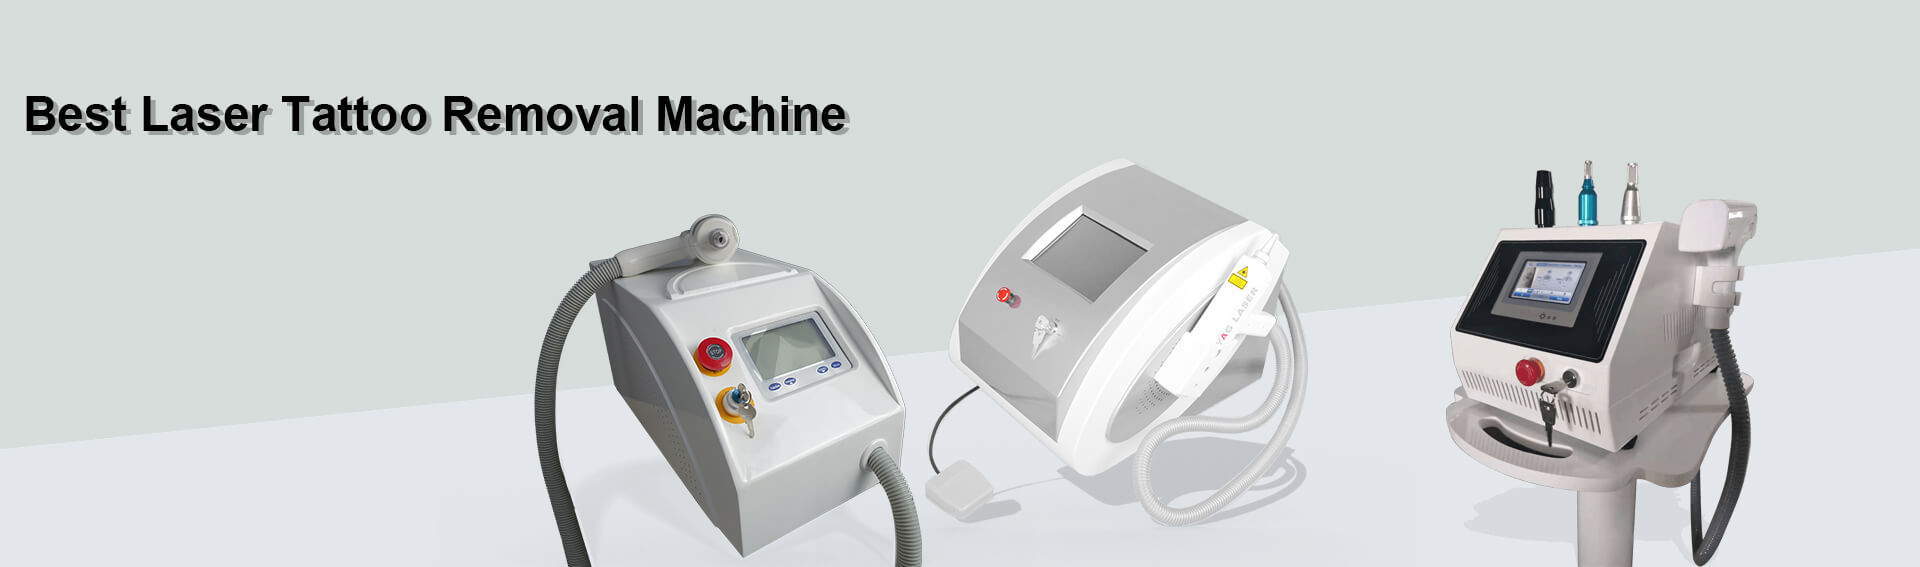 Best Laser Tattoo Removal Machines